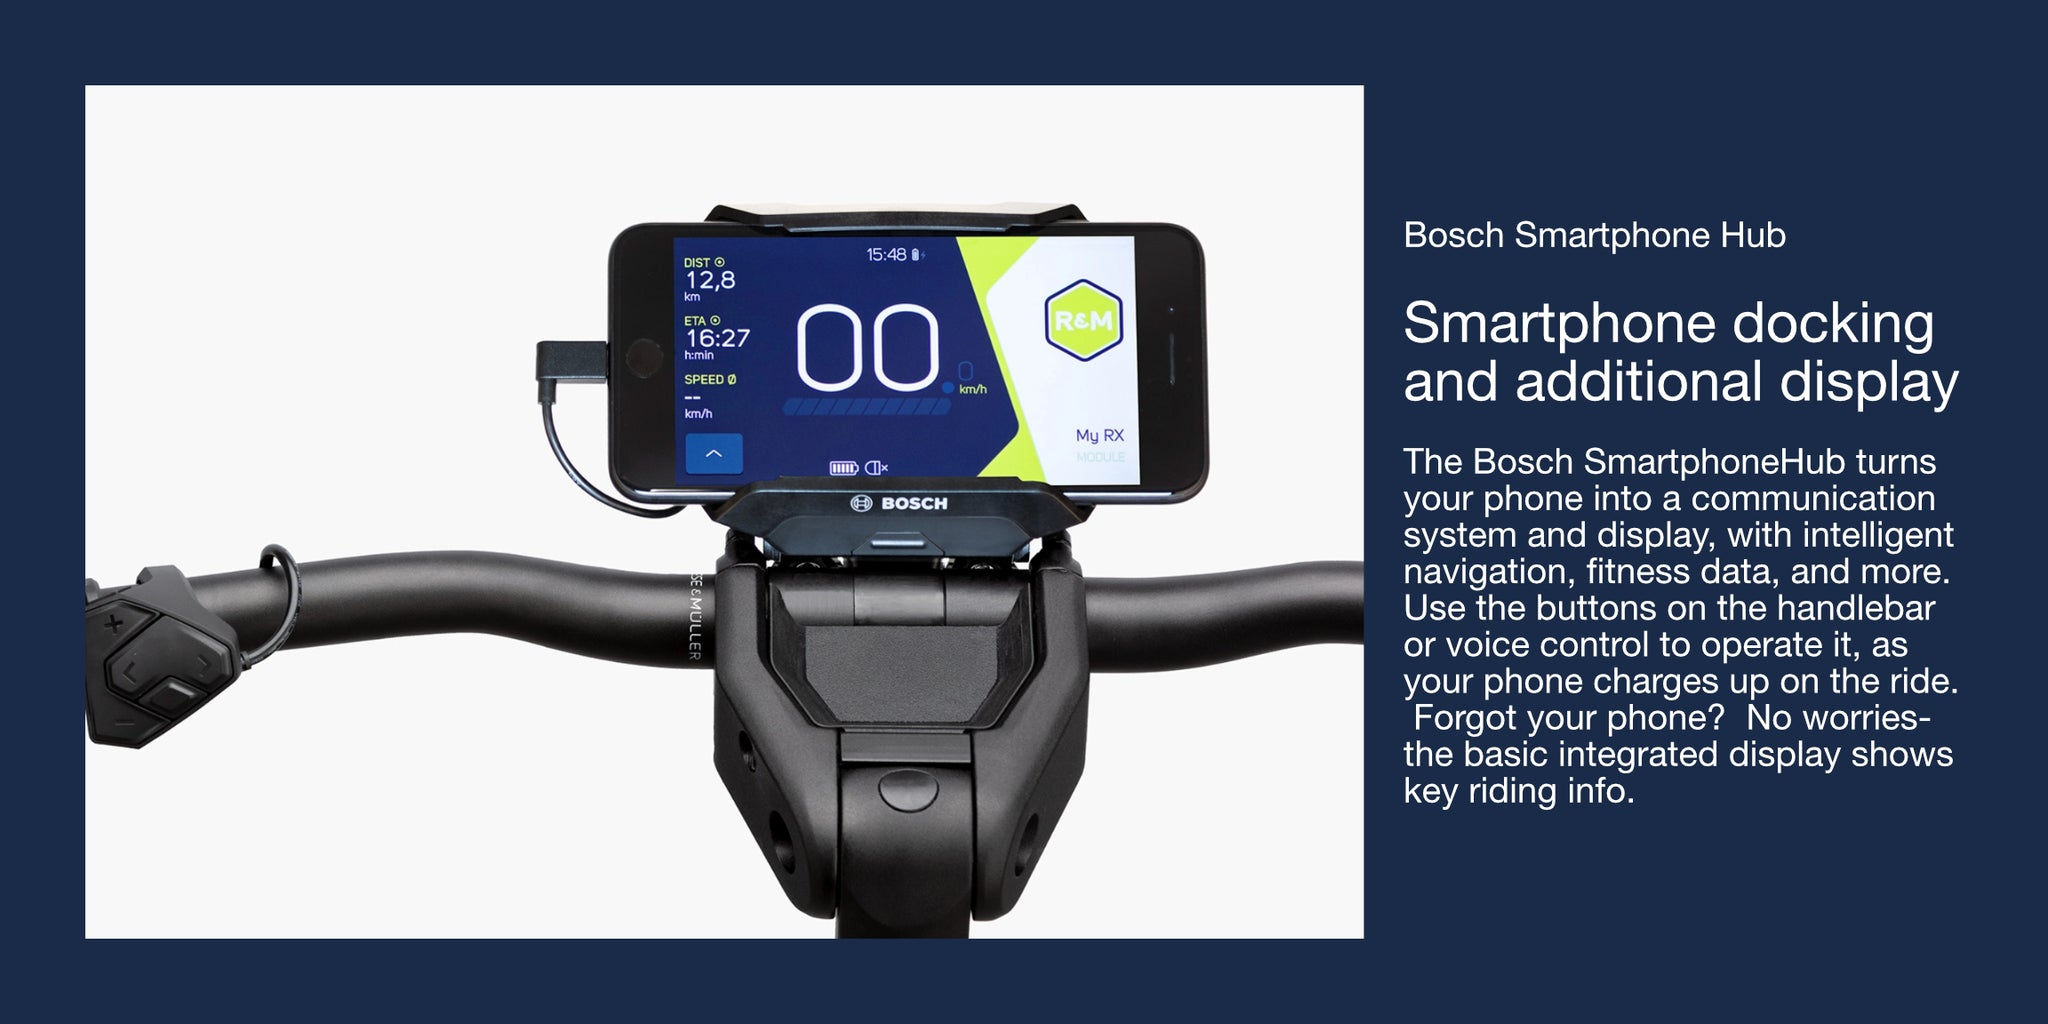 Bosch SmartphoneHub